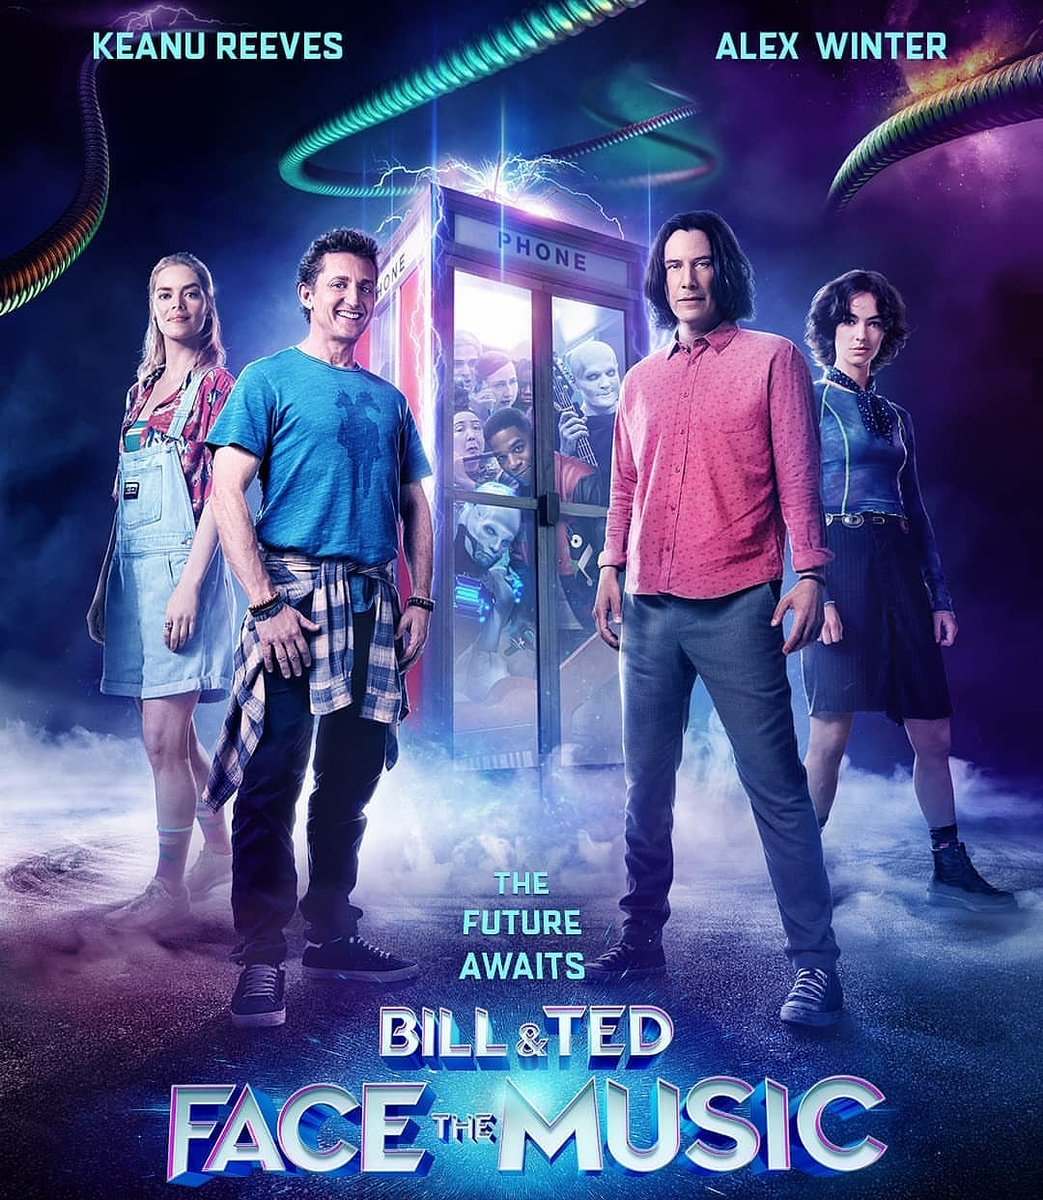 #KeanuReeves and #AlexWinter will be back with #BillandTed3 #Cinepolis #CinepolisIndiapic.twitter.com/f0UPfQVpK9